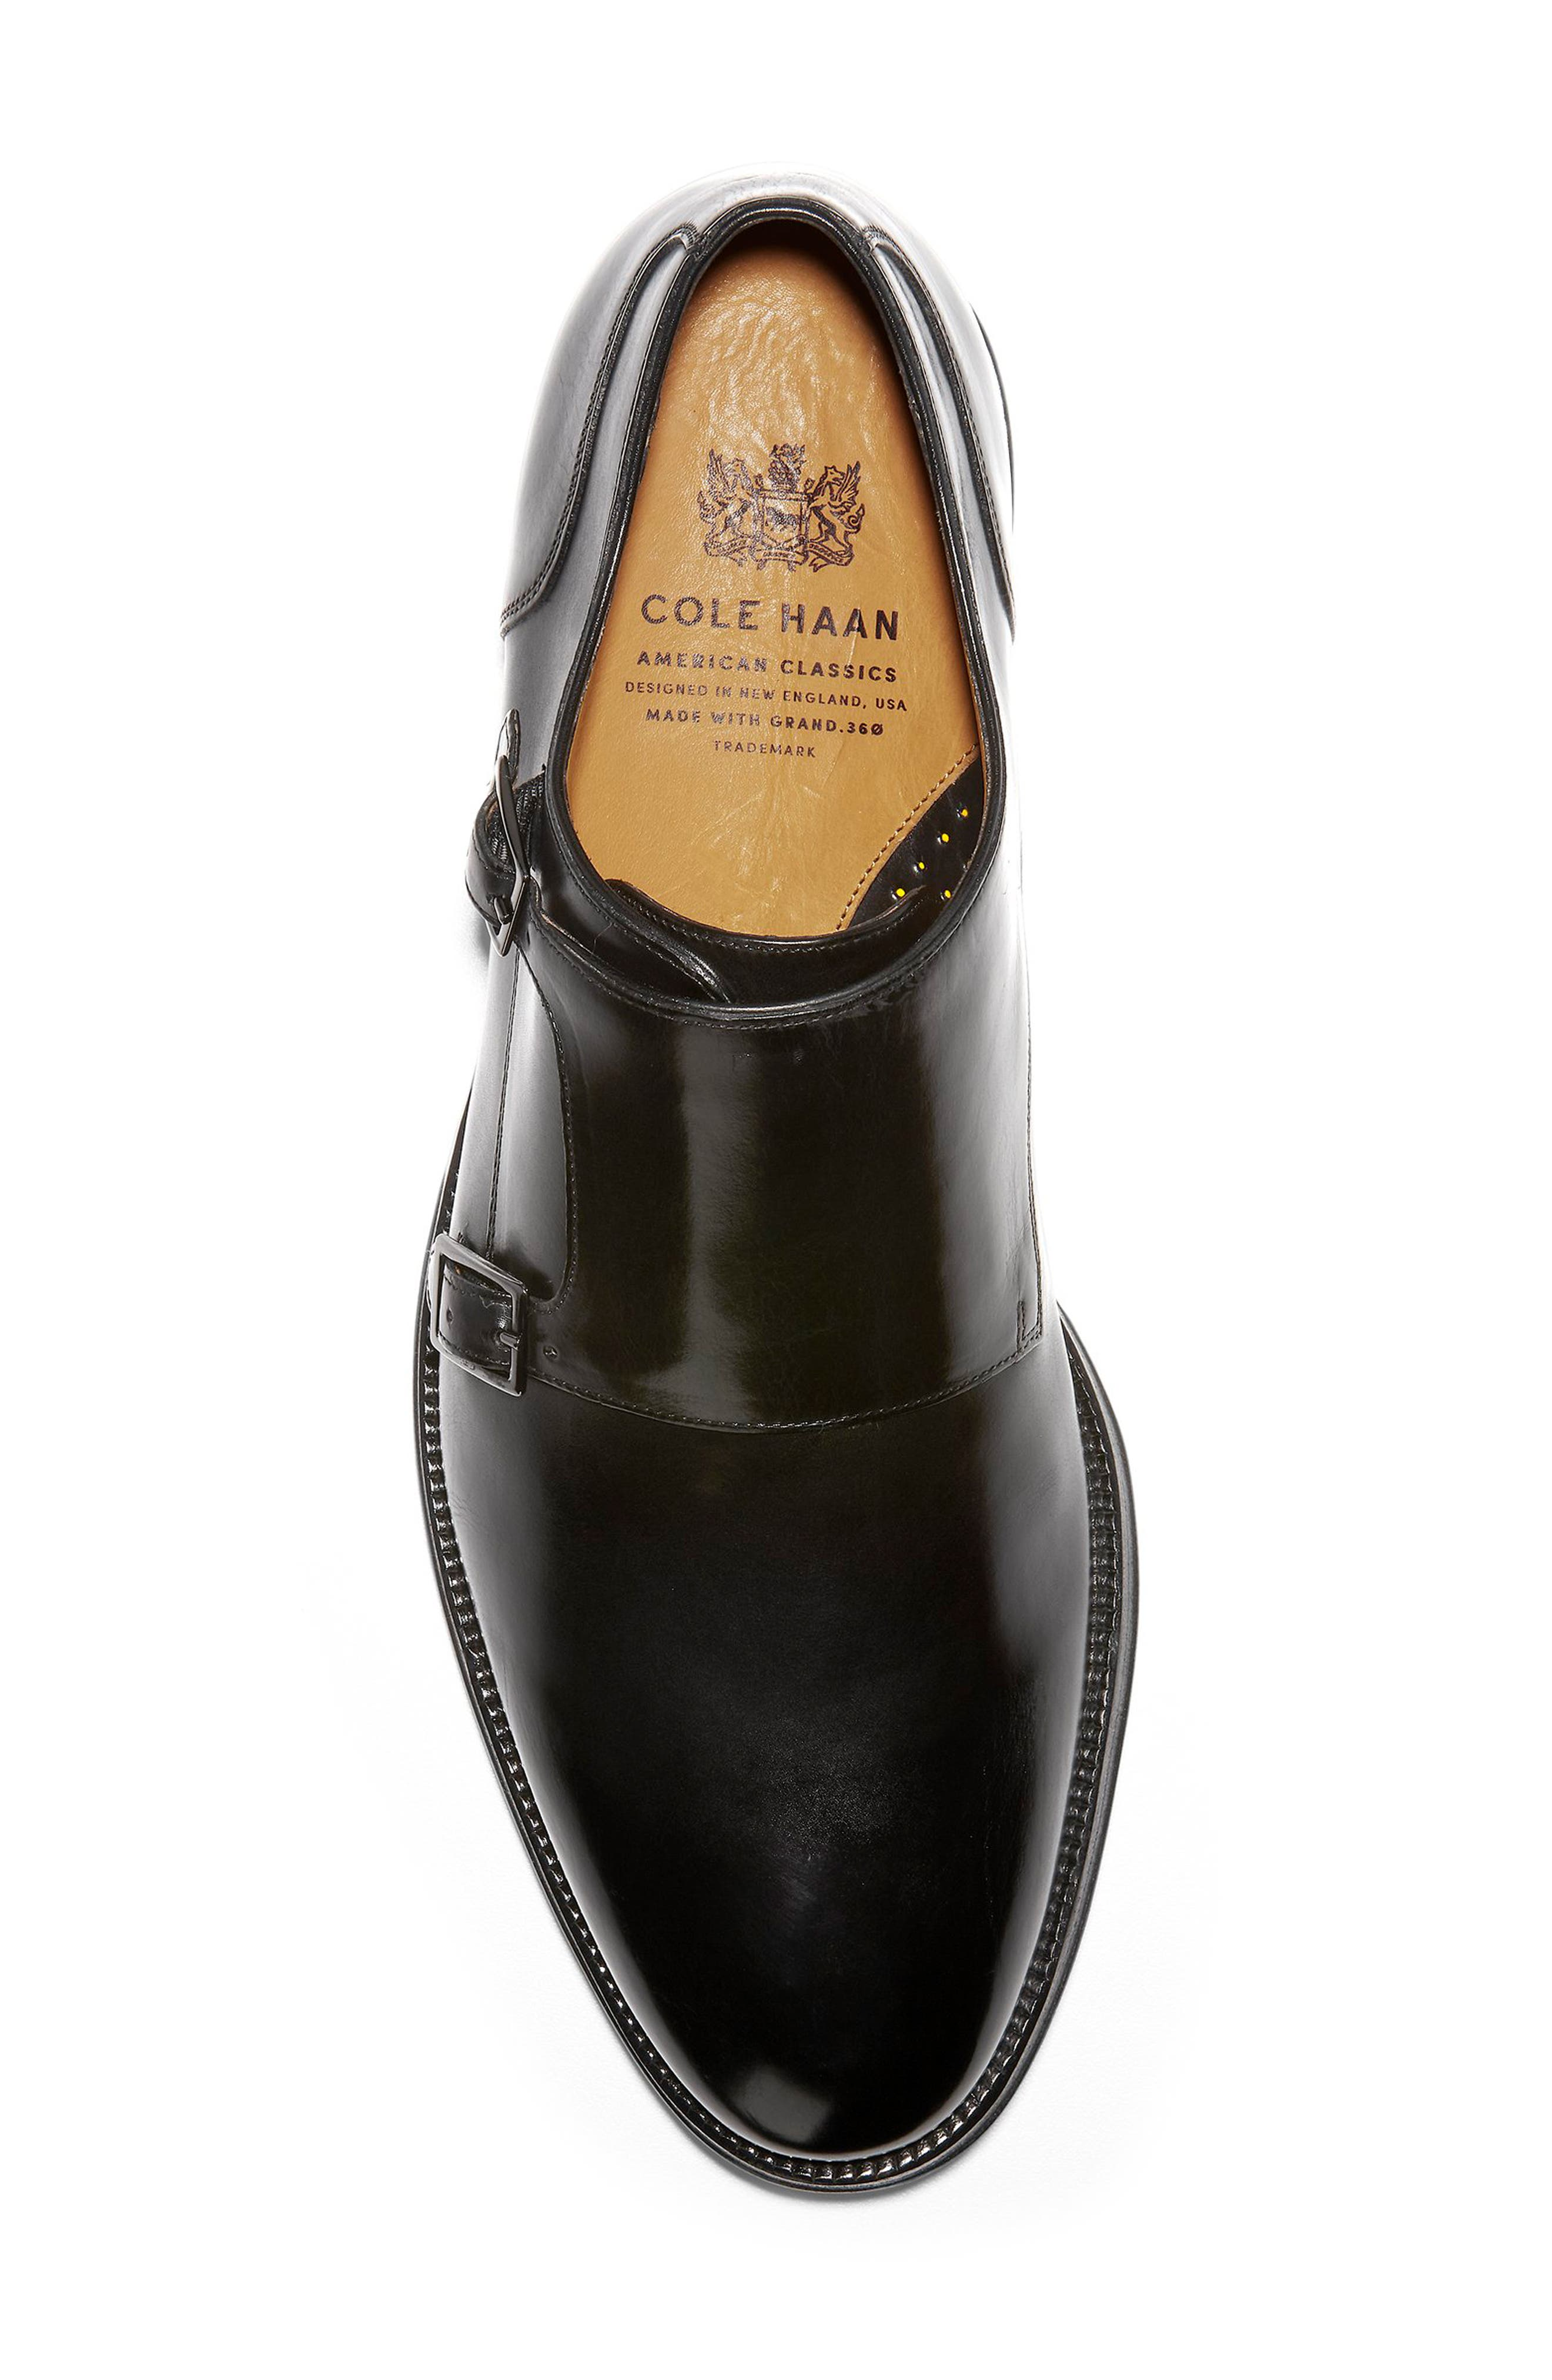 COLE HAAN, American Classics Gramercy Double Strap Monk Shoe, Alternate thumbnail 5, color, BLACK LEATHER